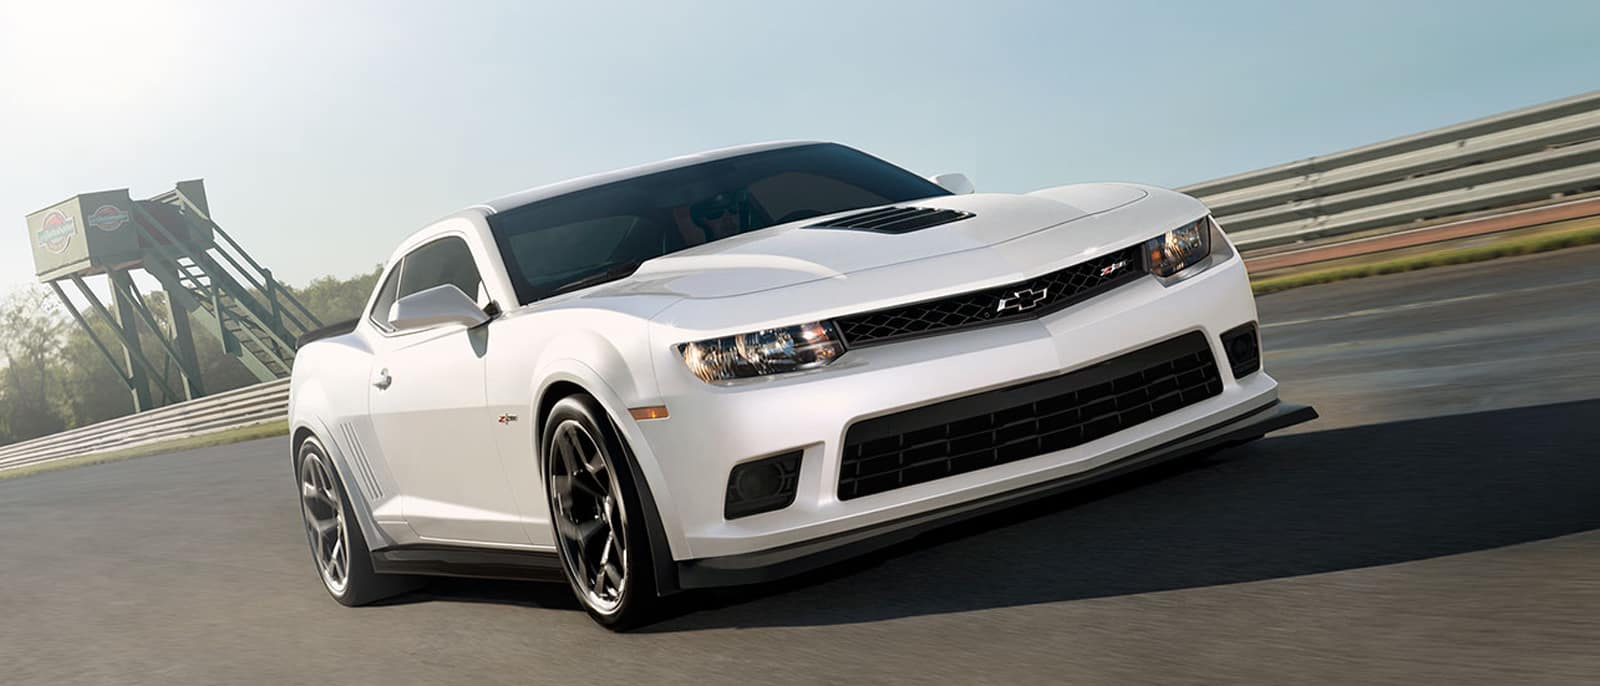 Camaro chevy camaro ss rs : 2015 Chevy Camaro RS Package and Accessories | Biggers Chevrolet